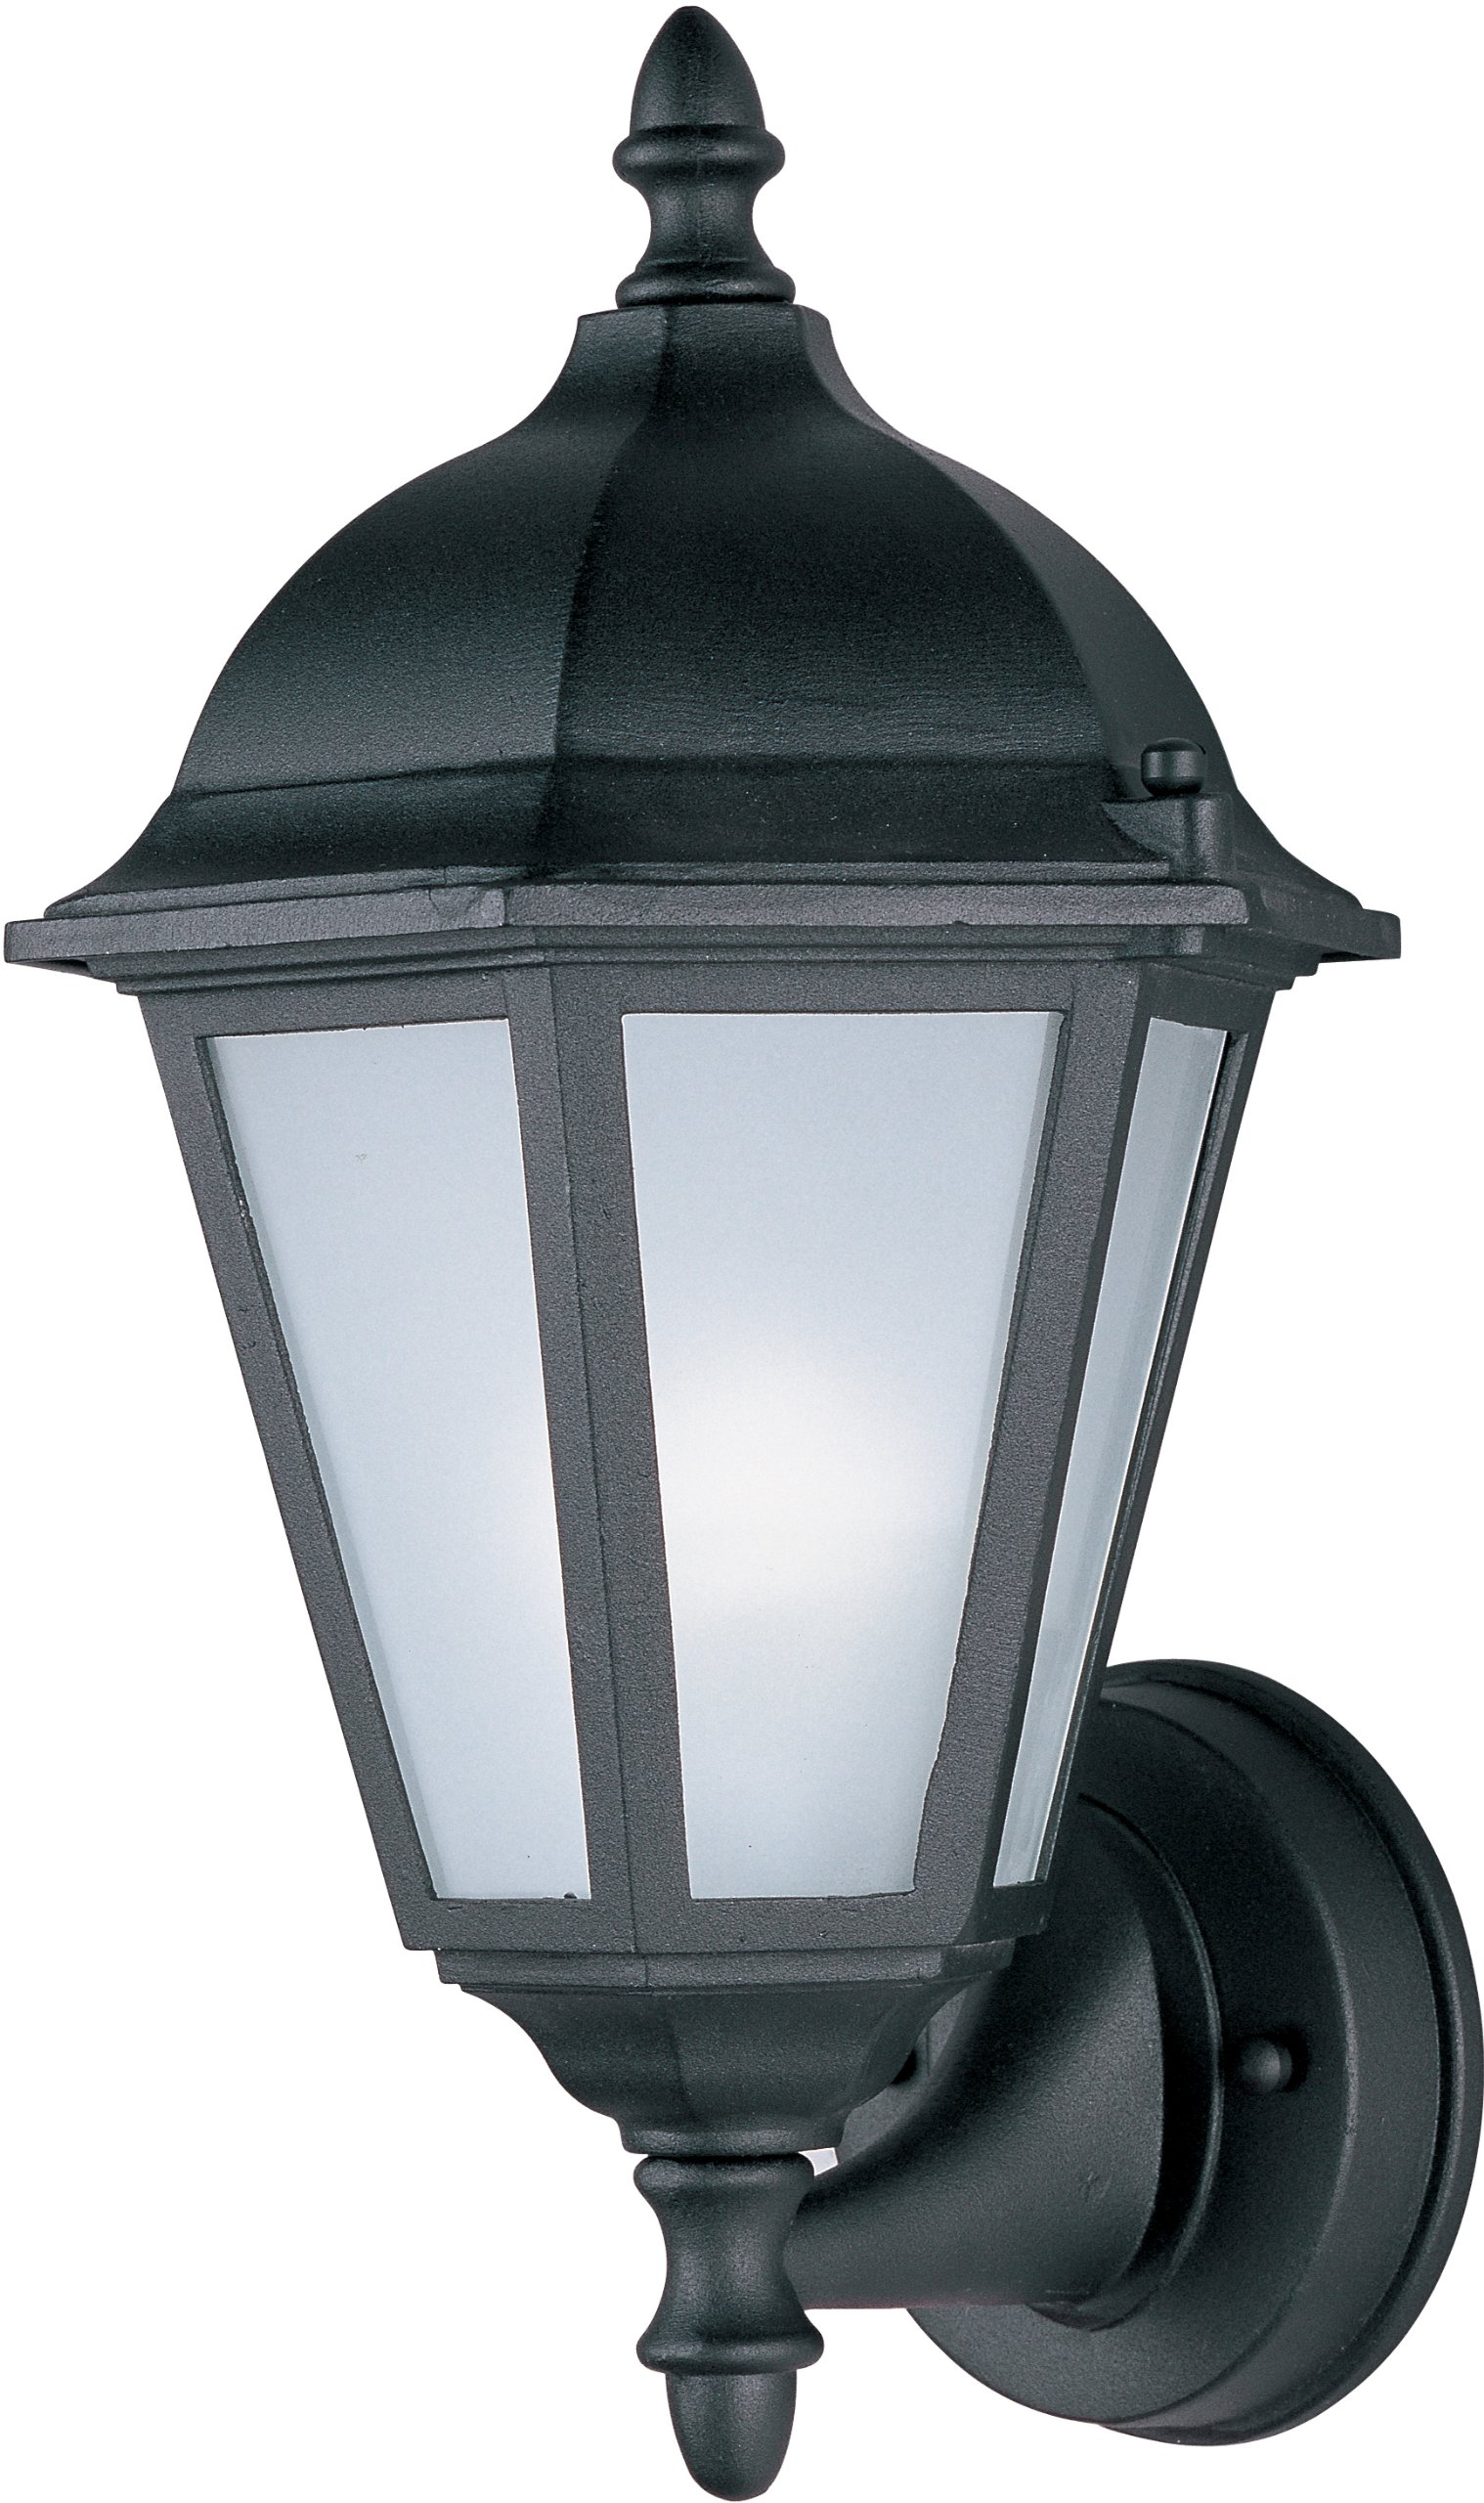 Maxim Lighting 55102 Westlake LED Outdoor Wall Mount, Black Finish, 8 by 15-Inch